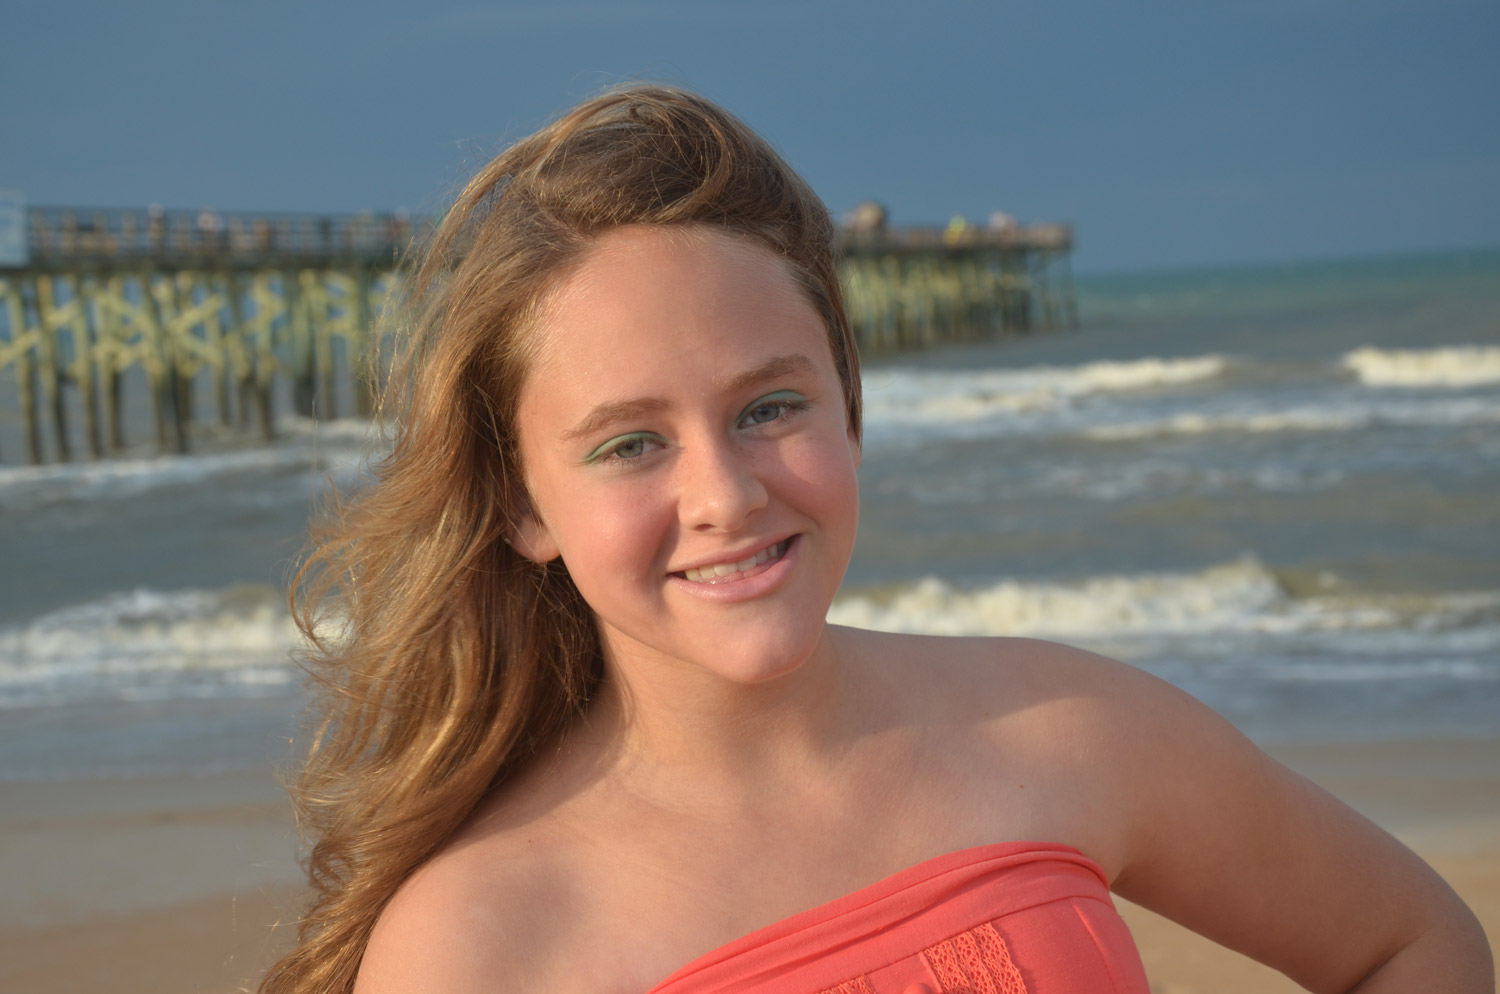 Junior Miss Flagler County